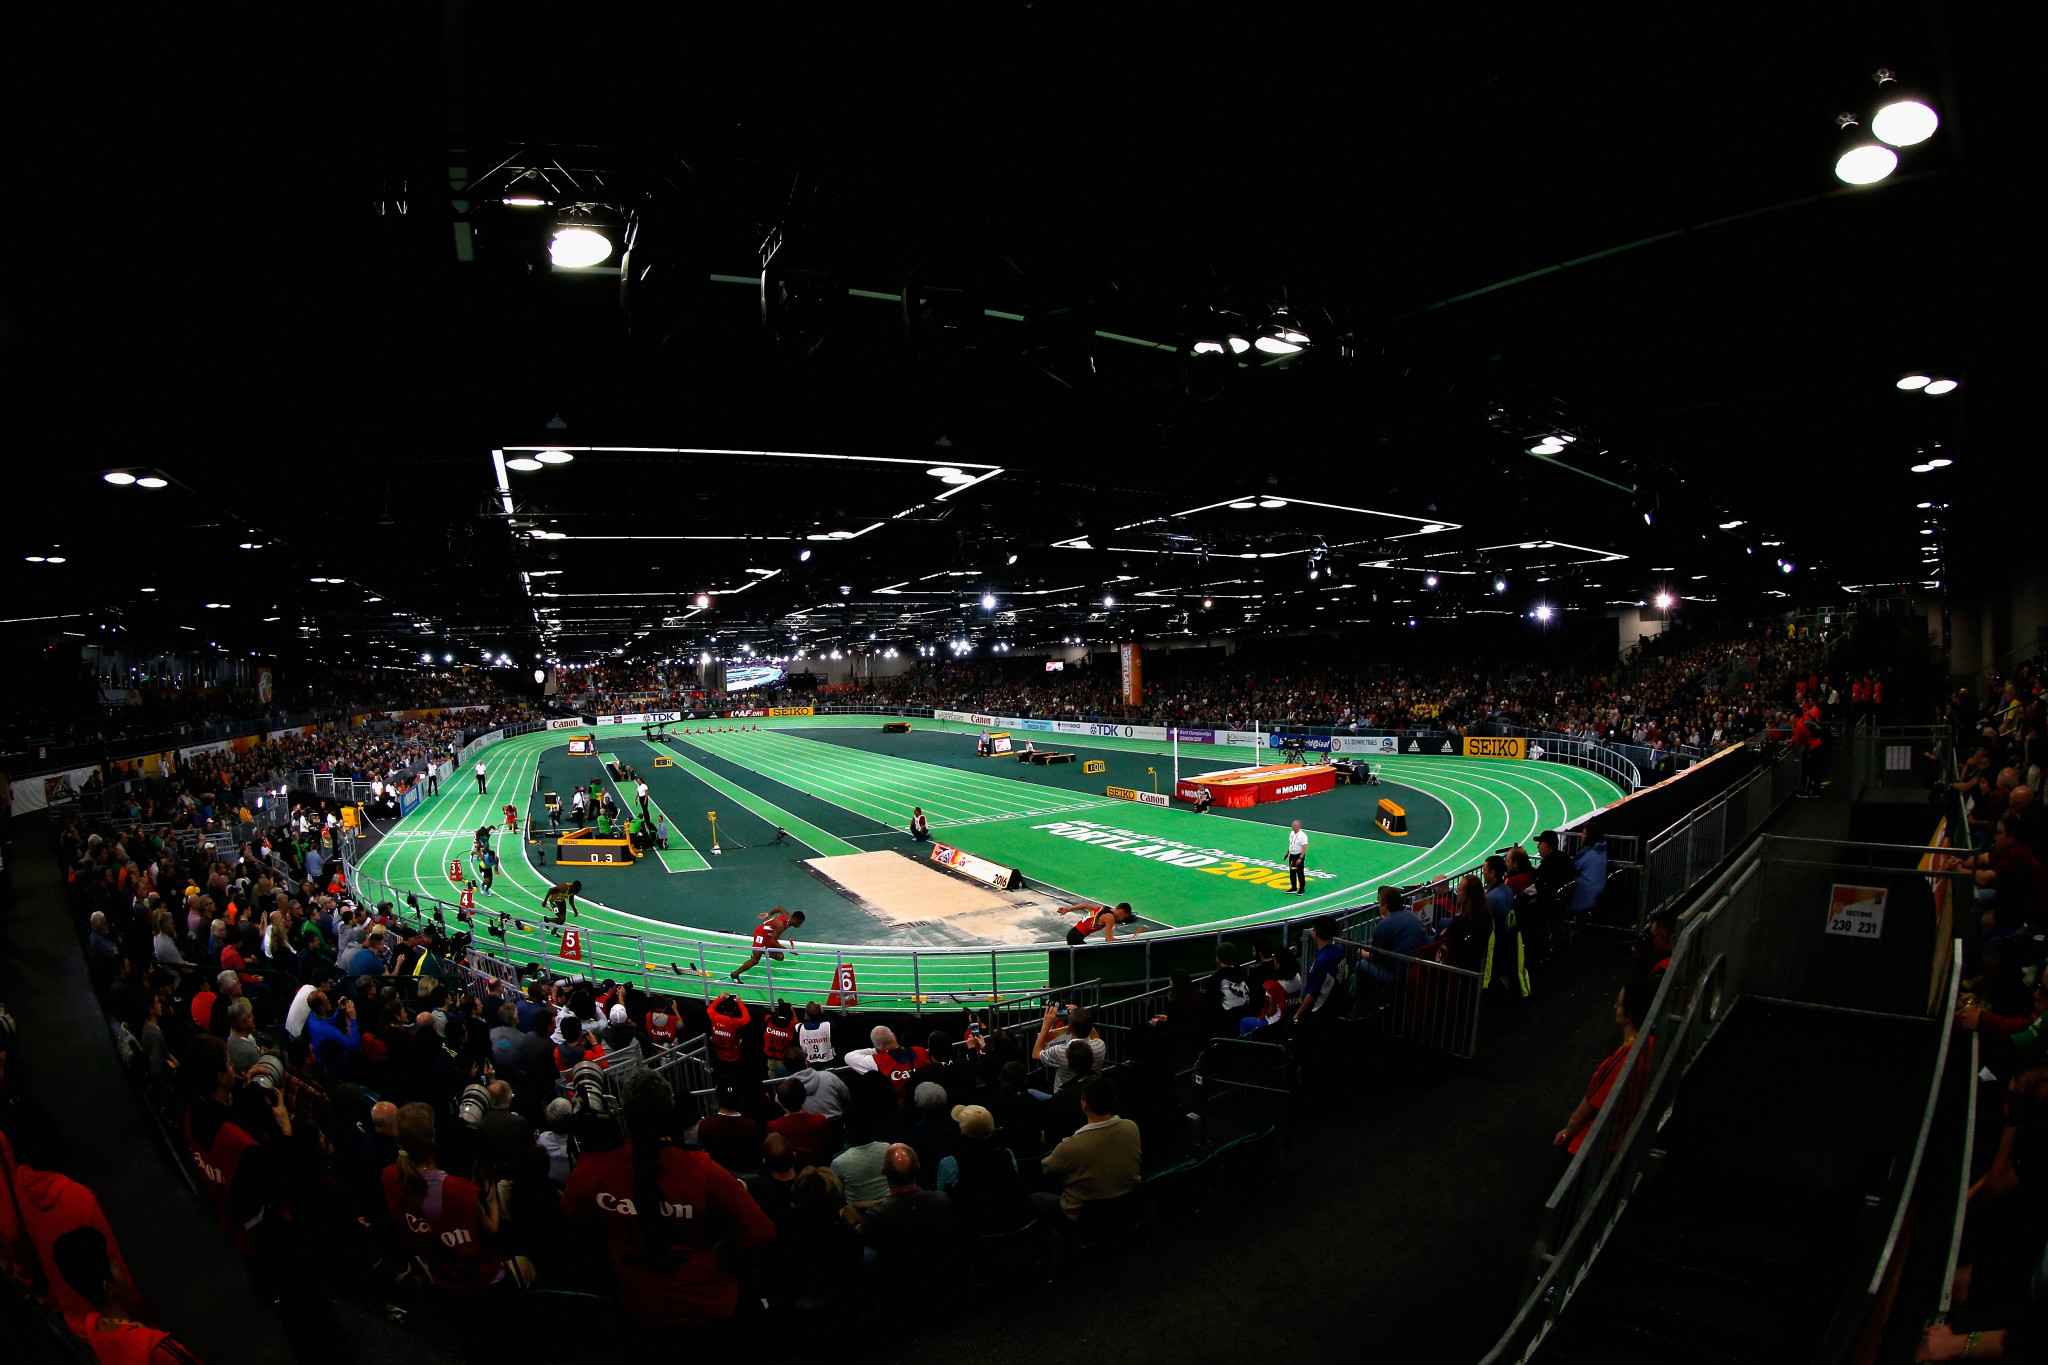 The Oregon Convention Center, a previous host of athletics events, provided the stage for the 2019 Pan American Cadet and Junior Poomsae Championships ©Getty Images